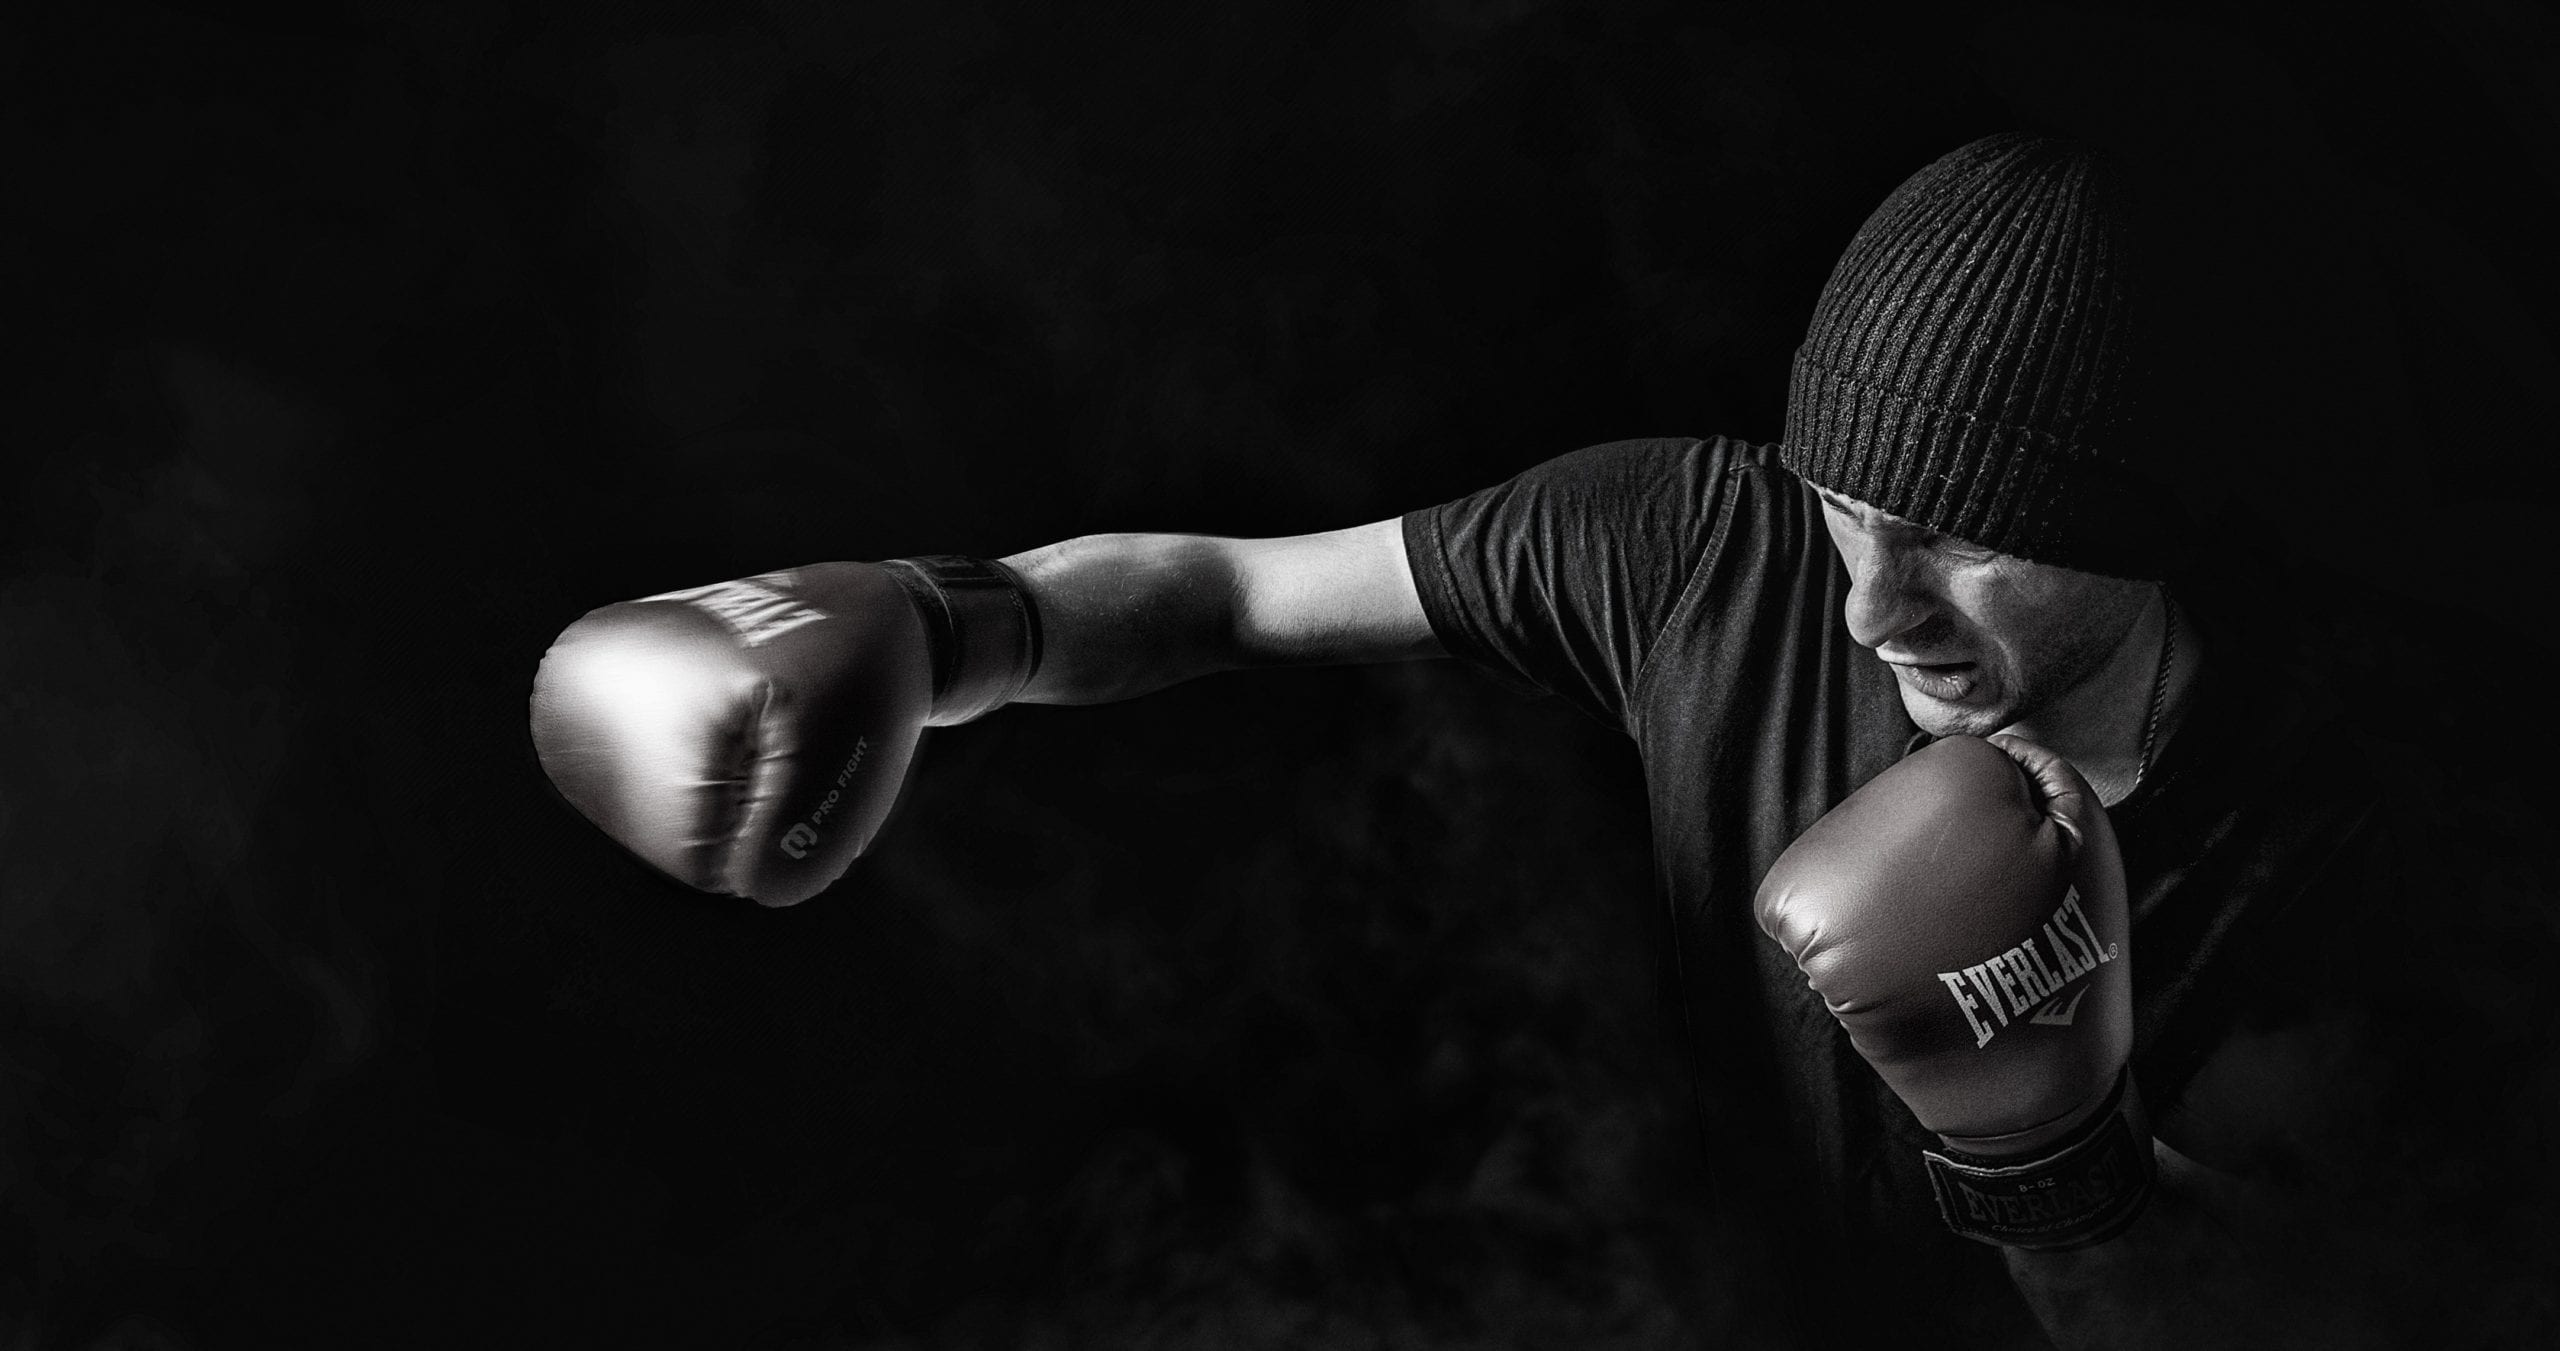 Does boxing build muscle